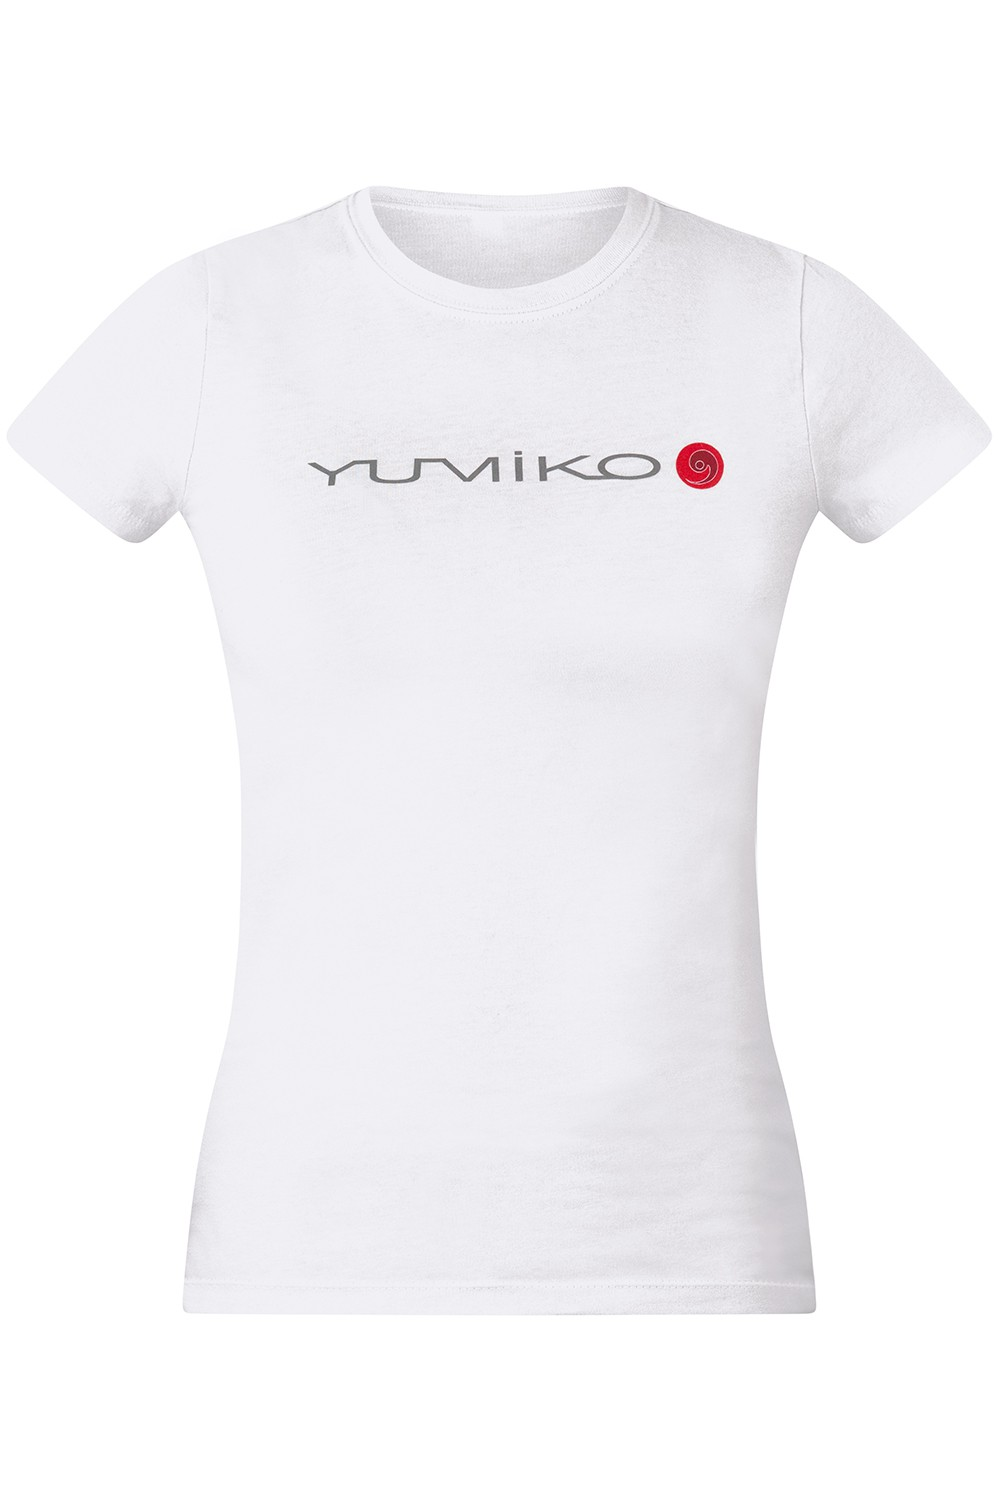 Women's White T-Shirt